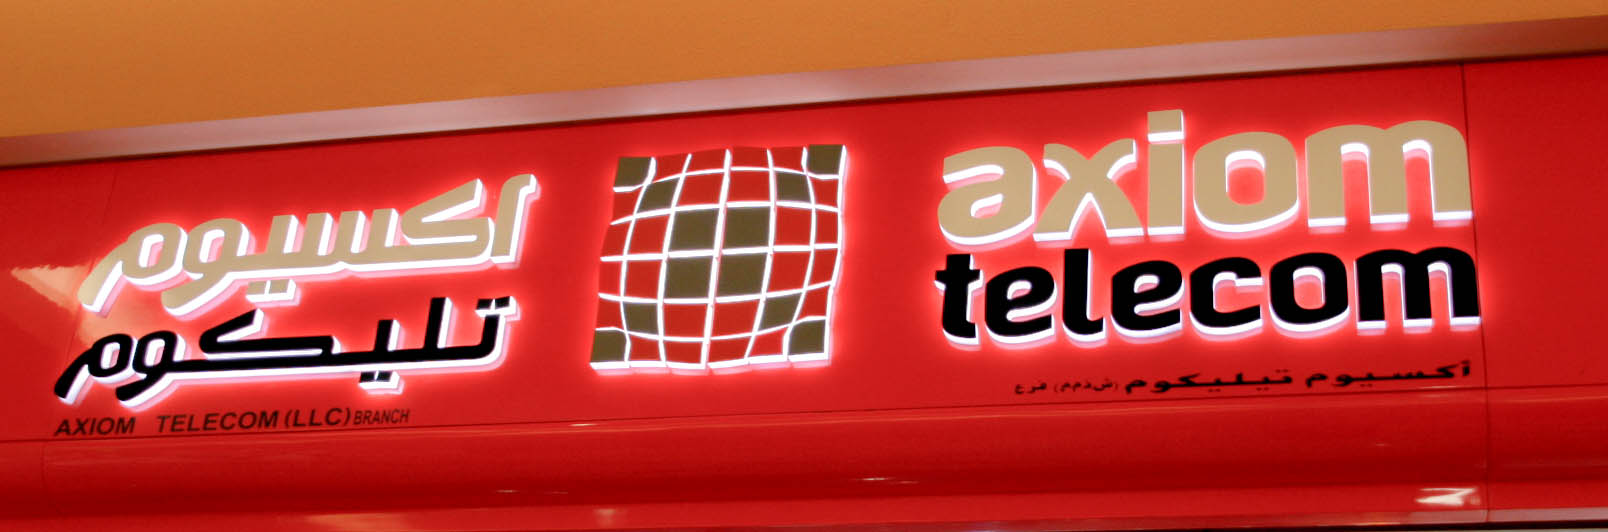 Axiom Telecom LLC | Brand-GID | UAE